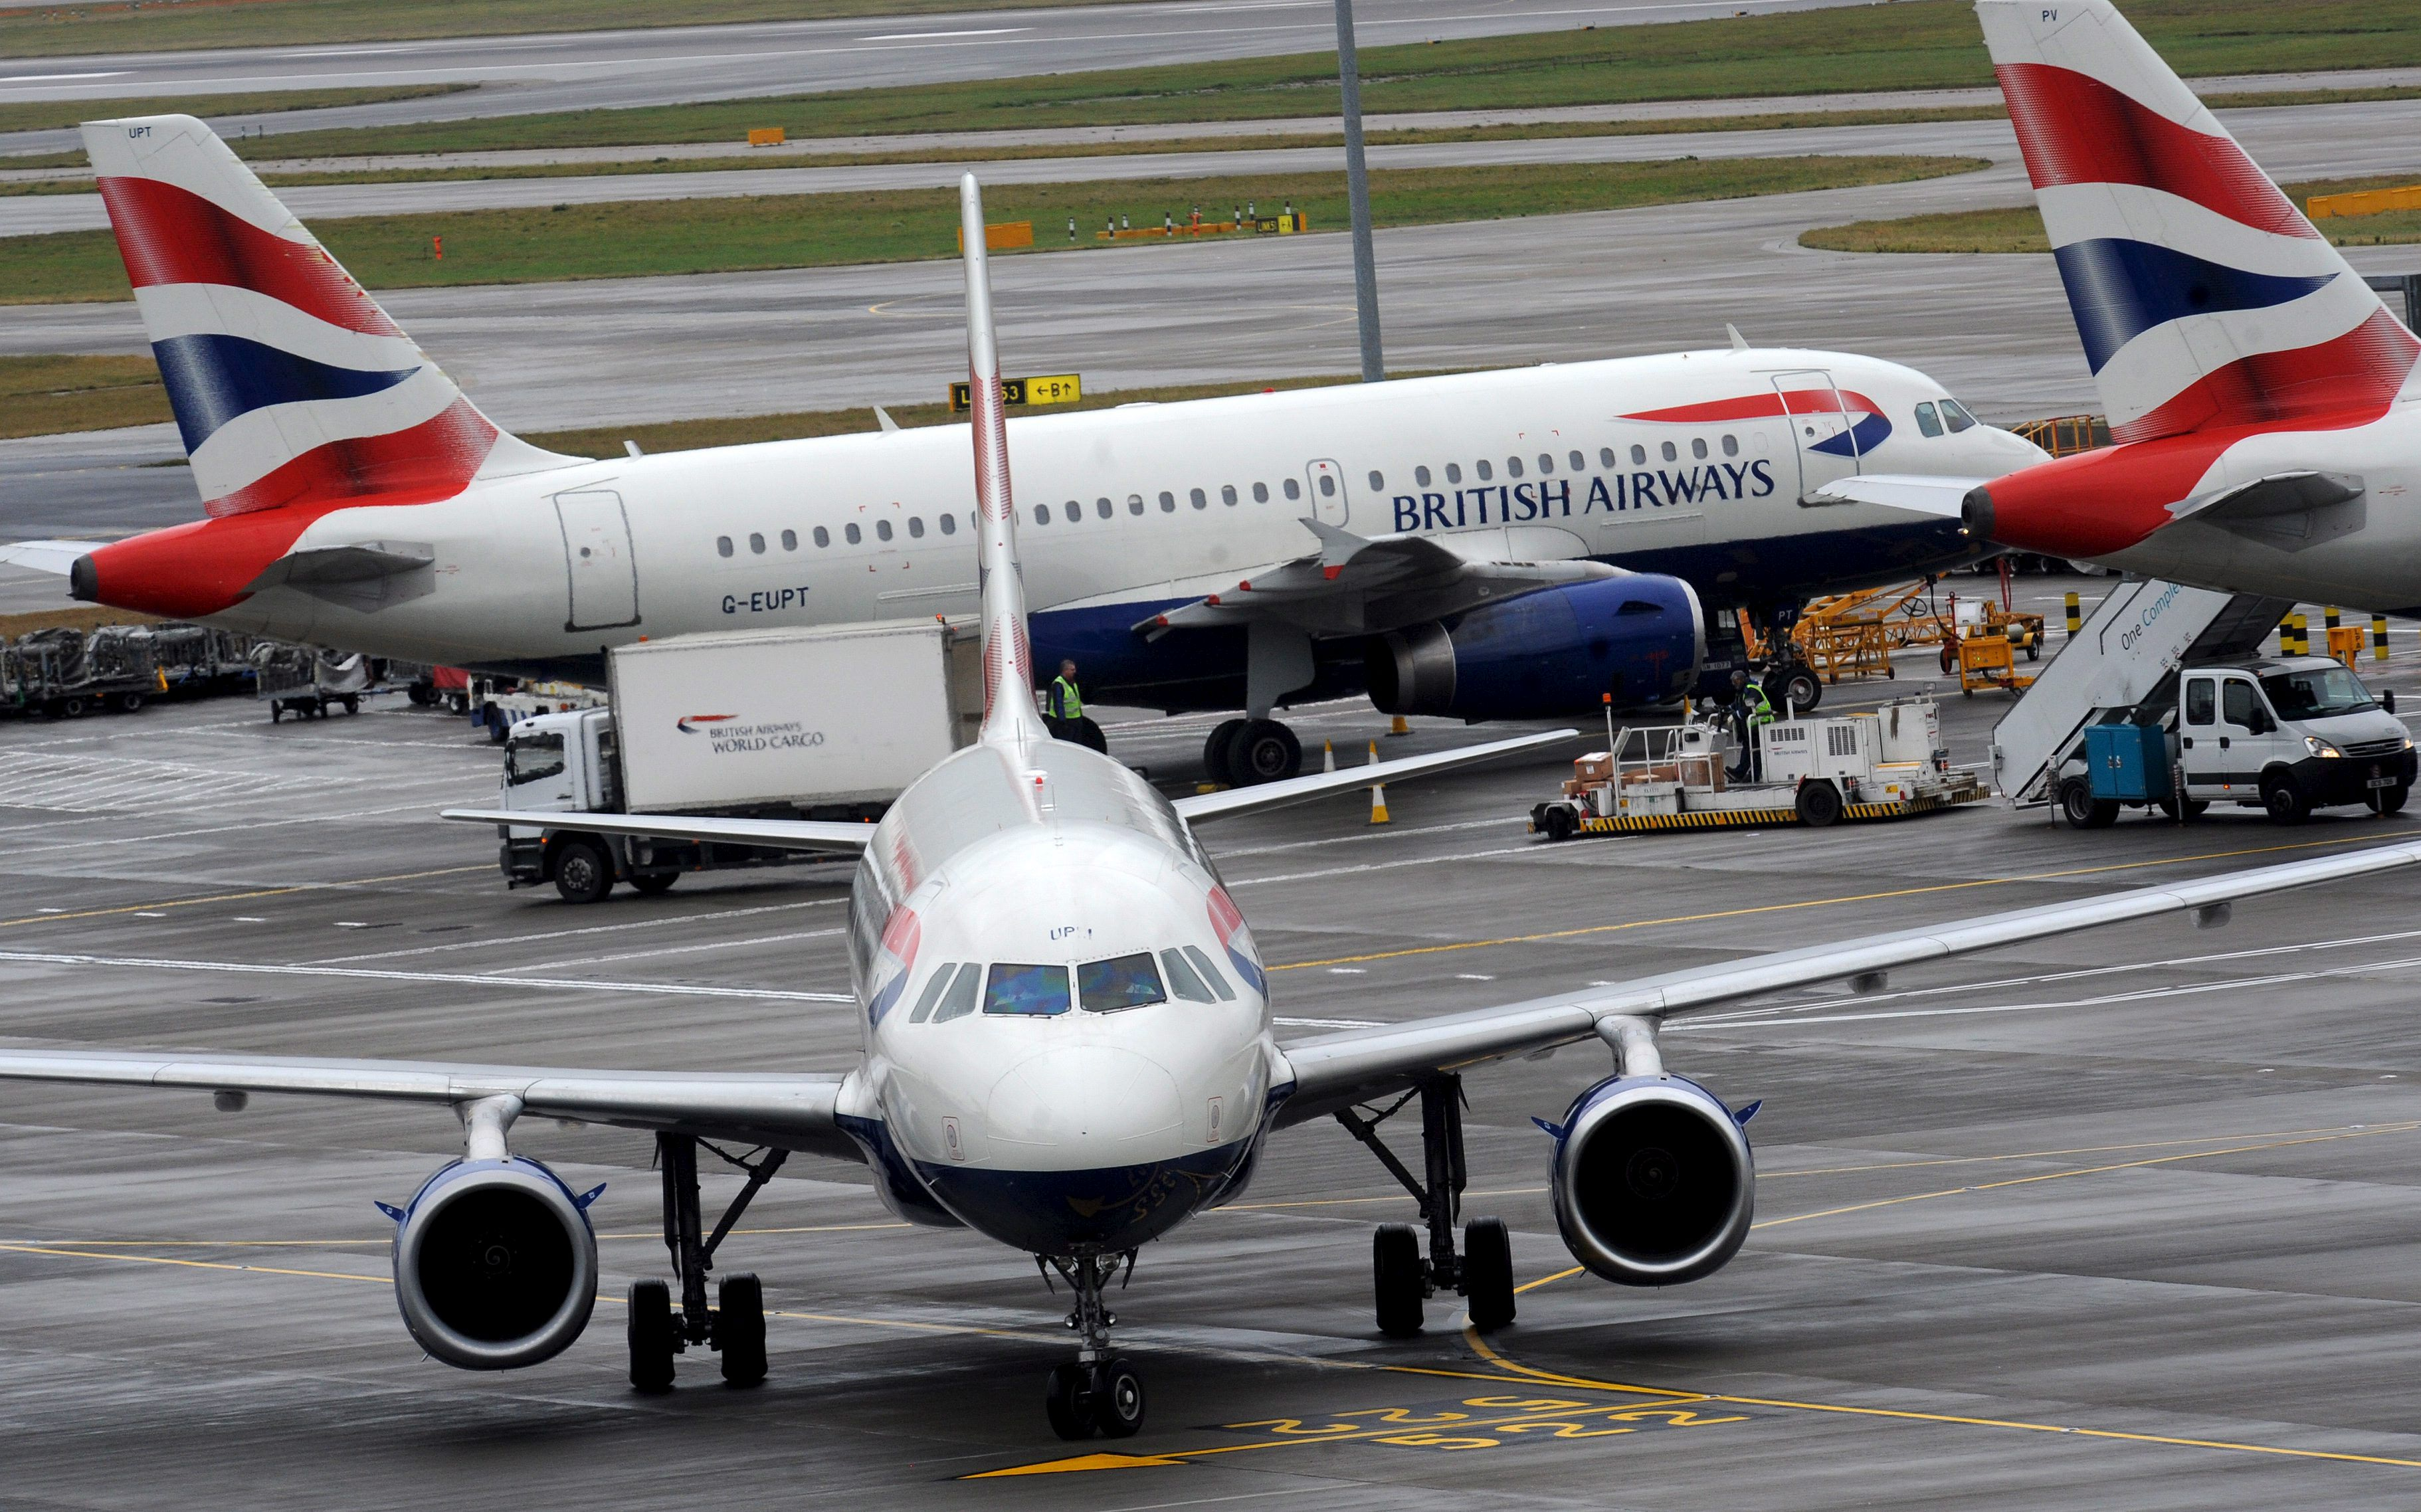 Aviones de British Airways. ADP